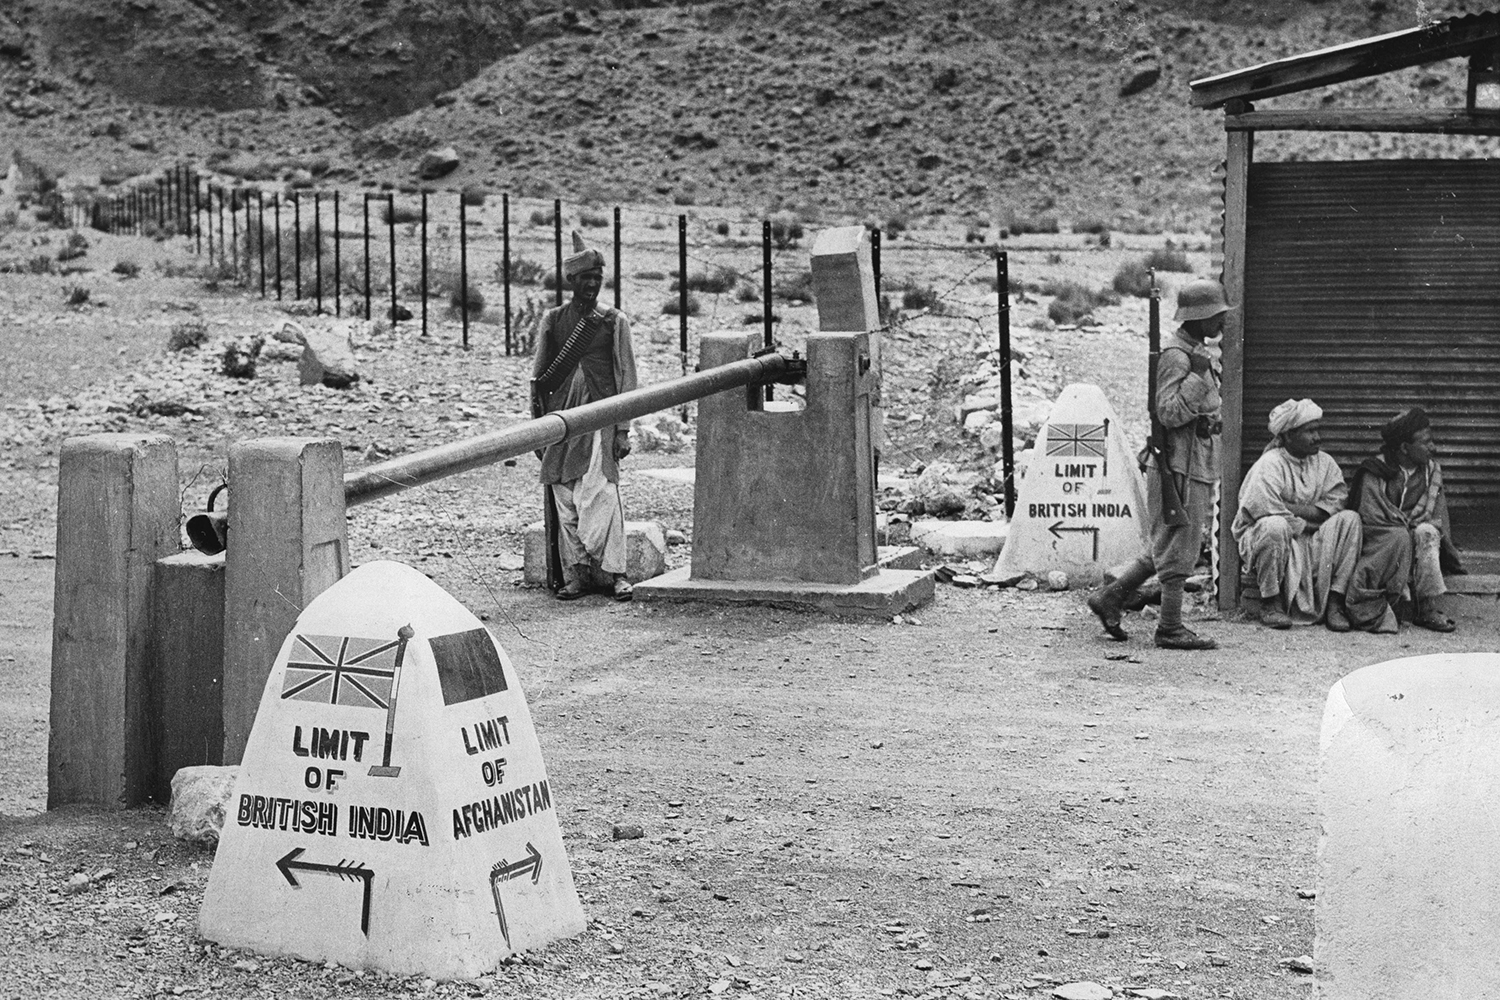 The frontier in the Khyber Pass between British India and Afghanistan